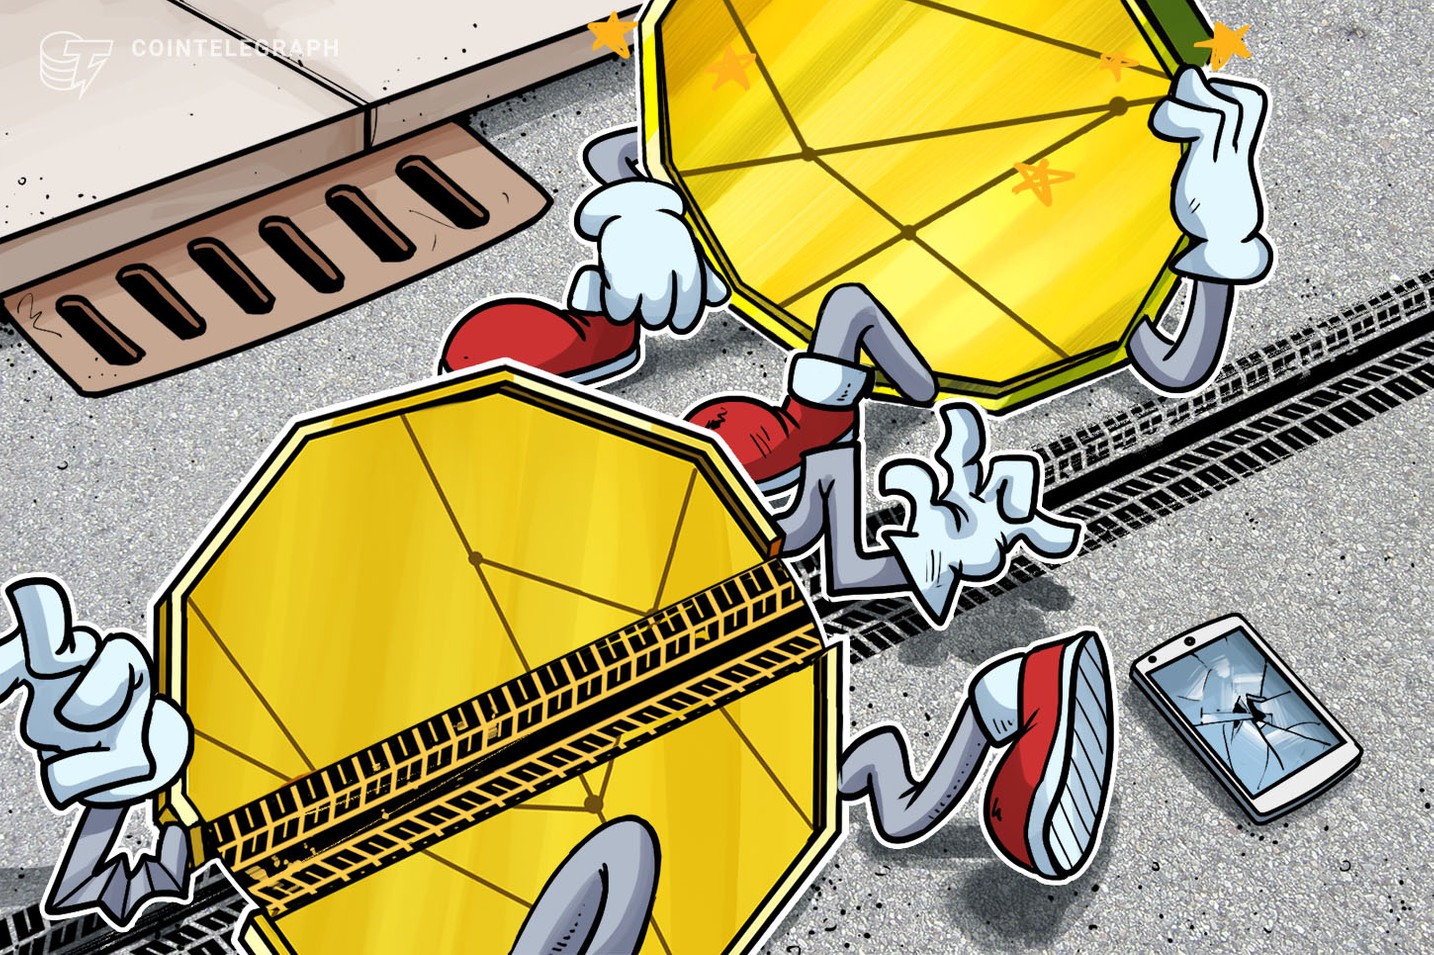 Max pain scenario intensifies as Bitcoin drops to $31K, altcoins sell-off